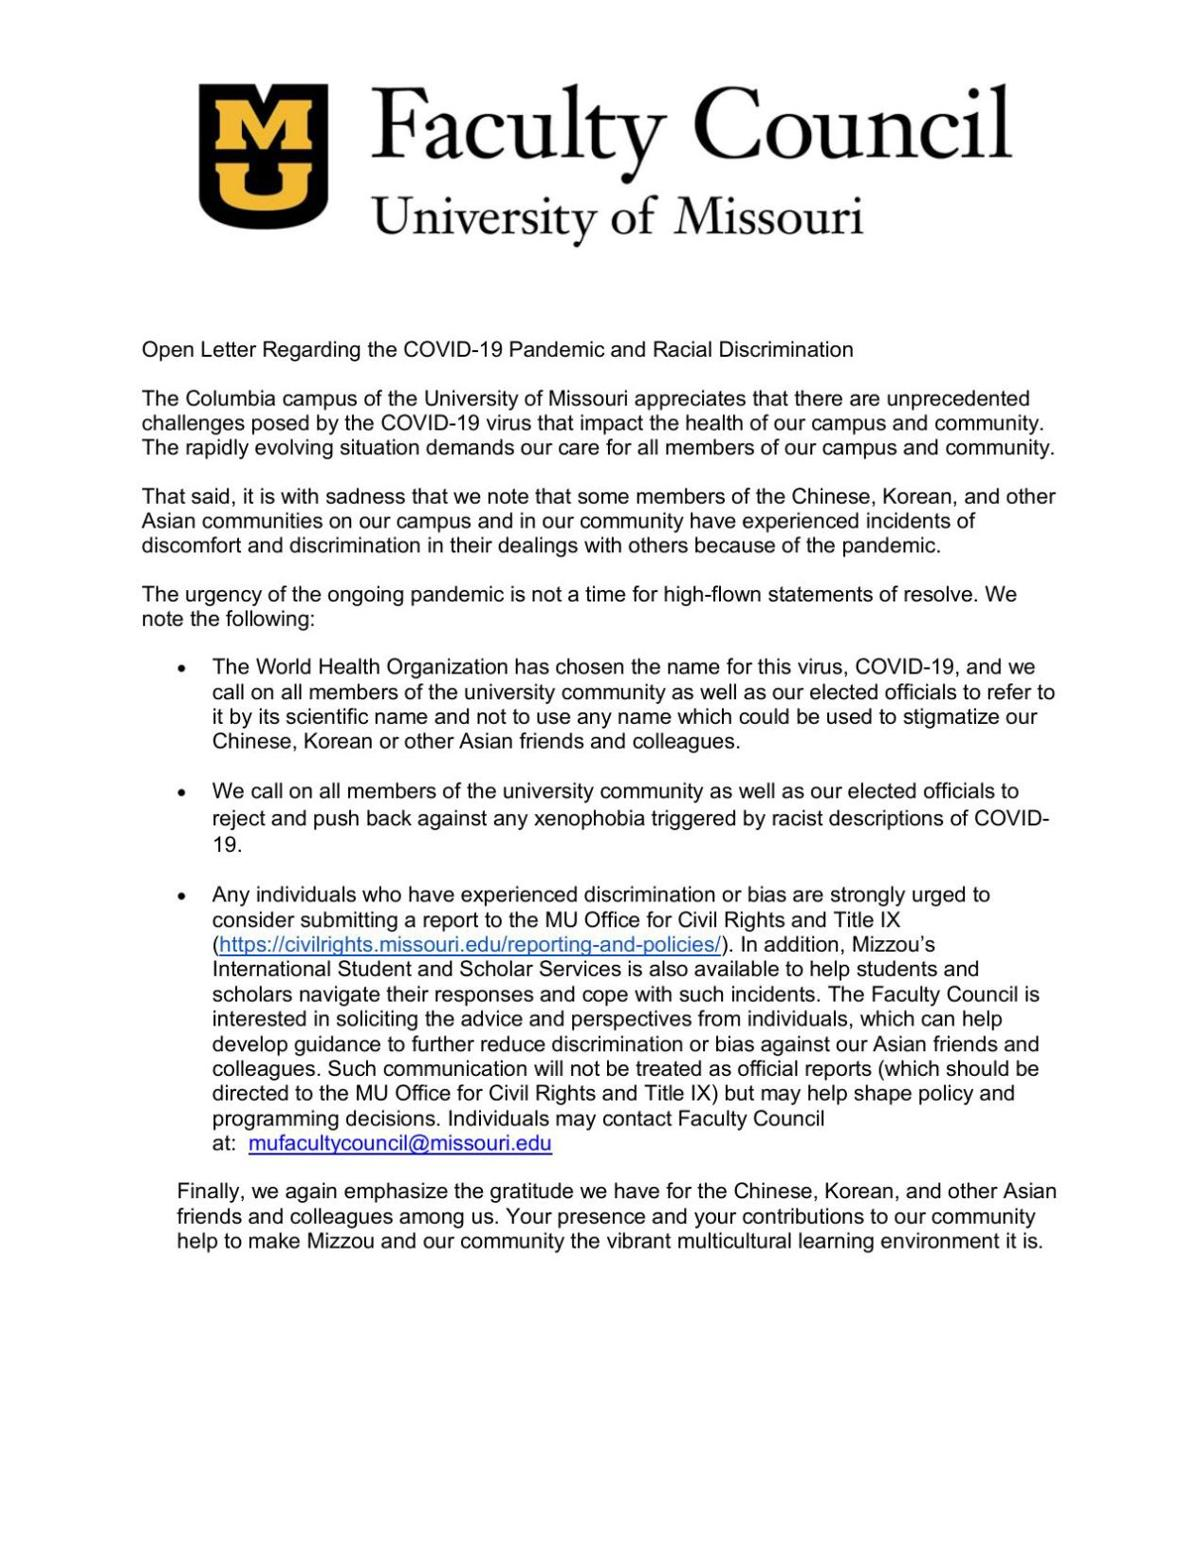 MU Faculty Council letter